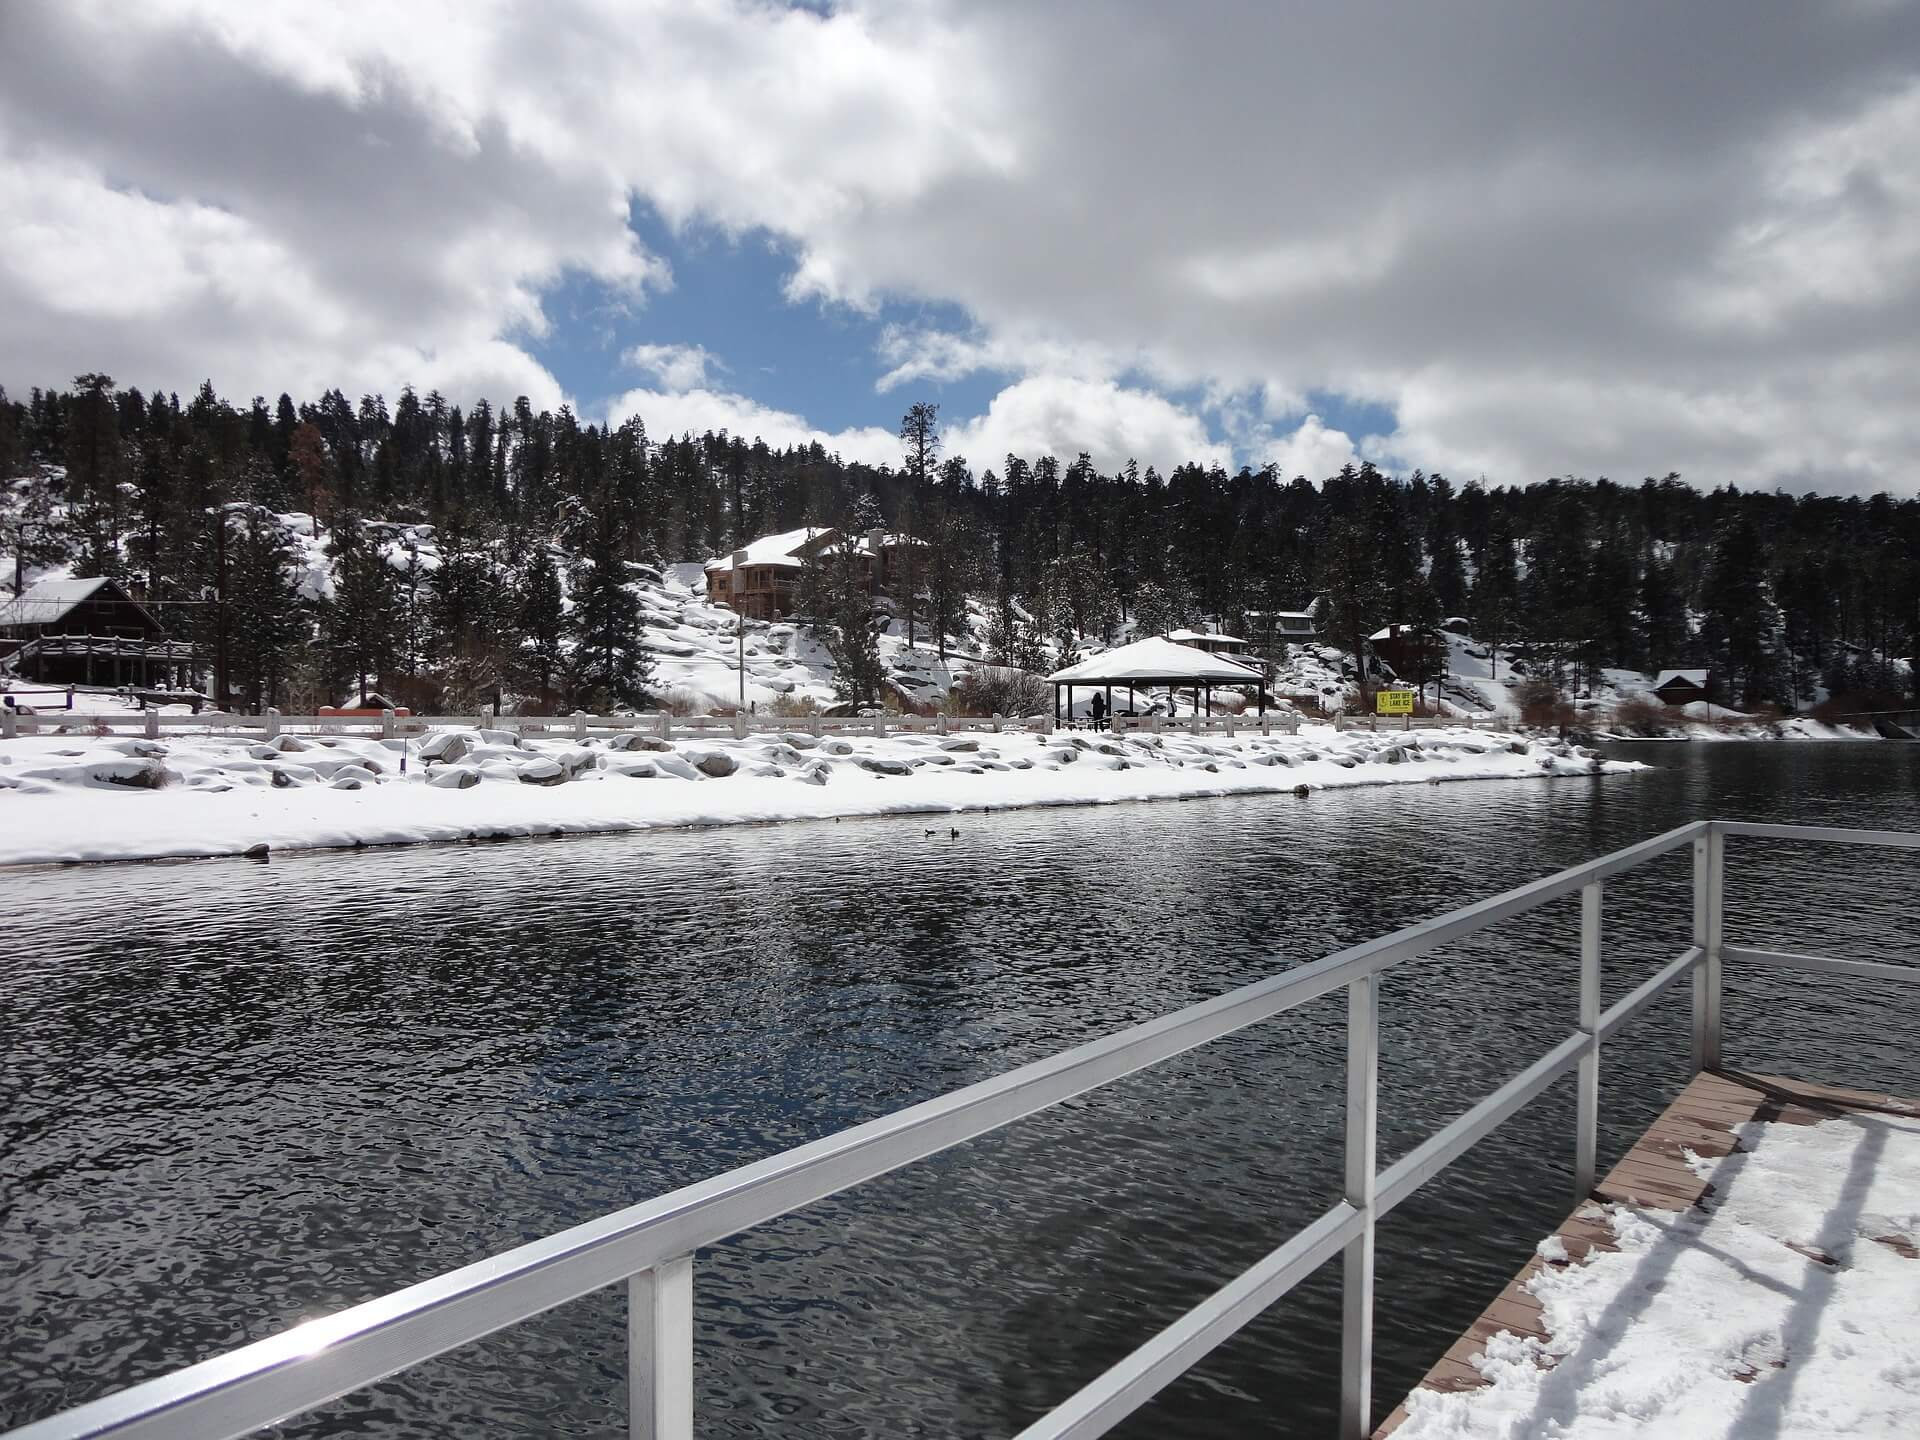 How to Spend a Weekend in Big Bear Lake, California